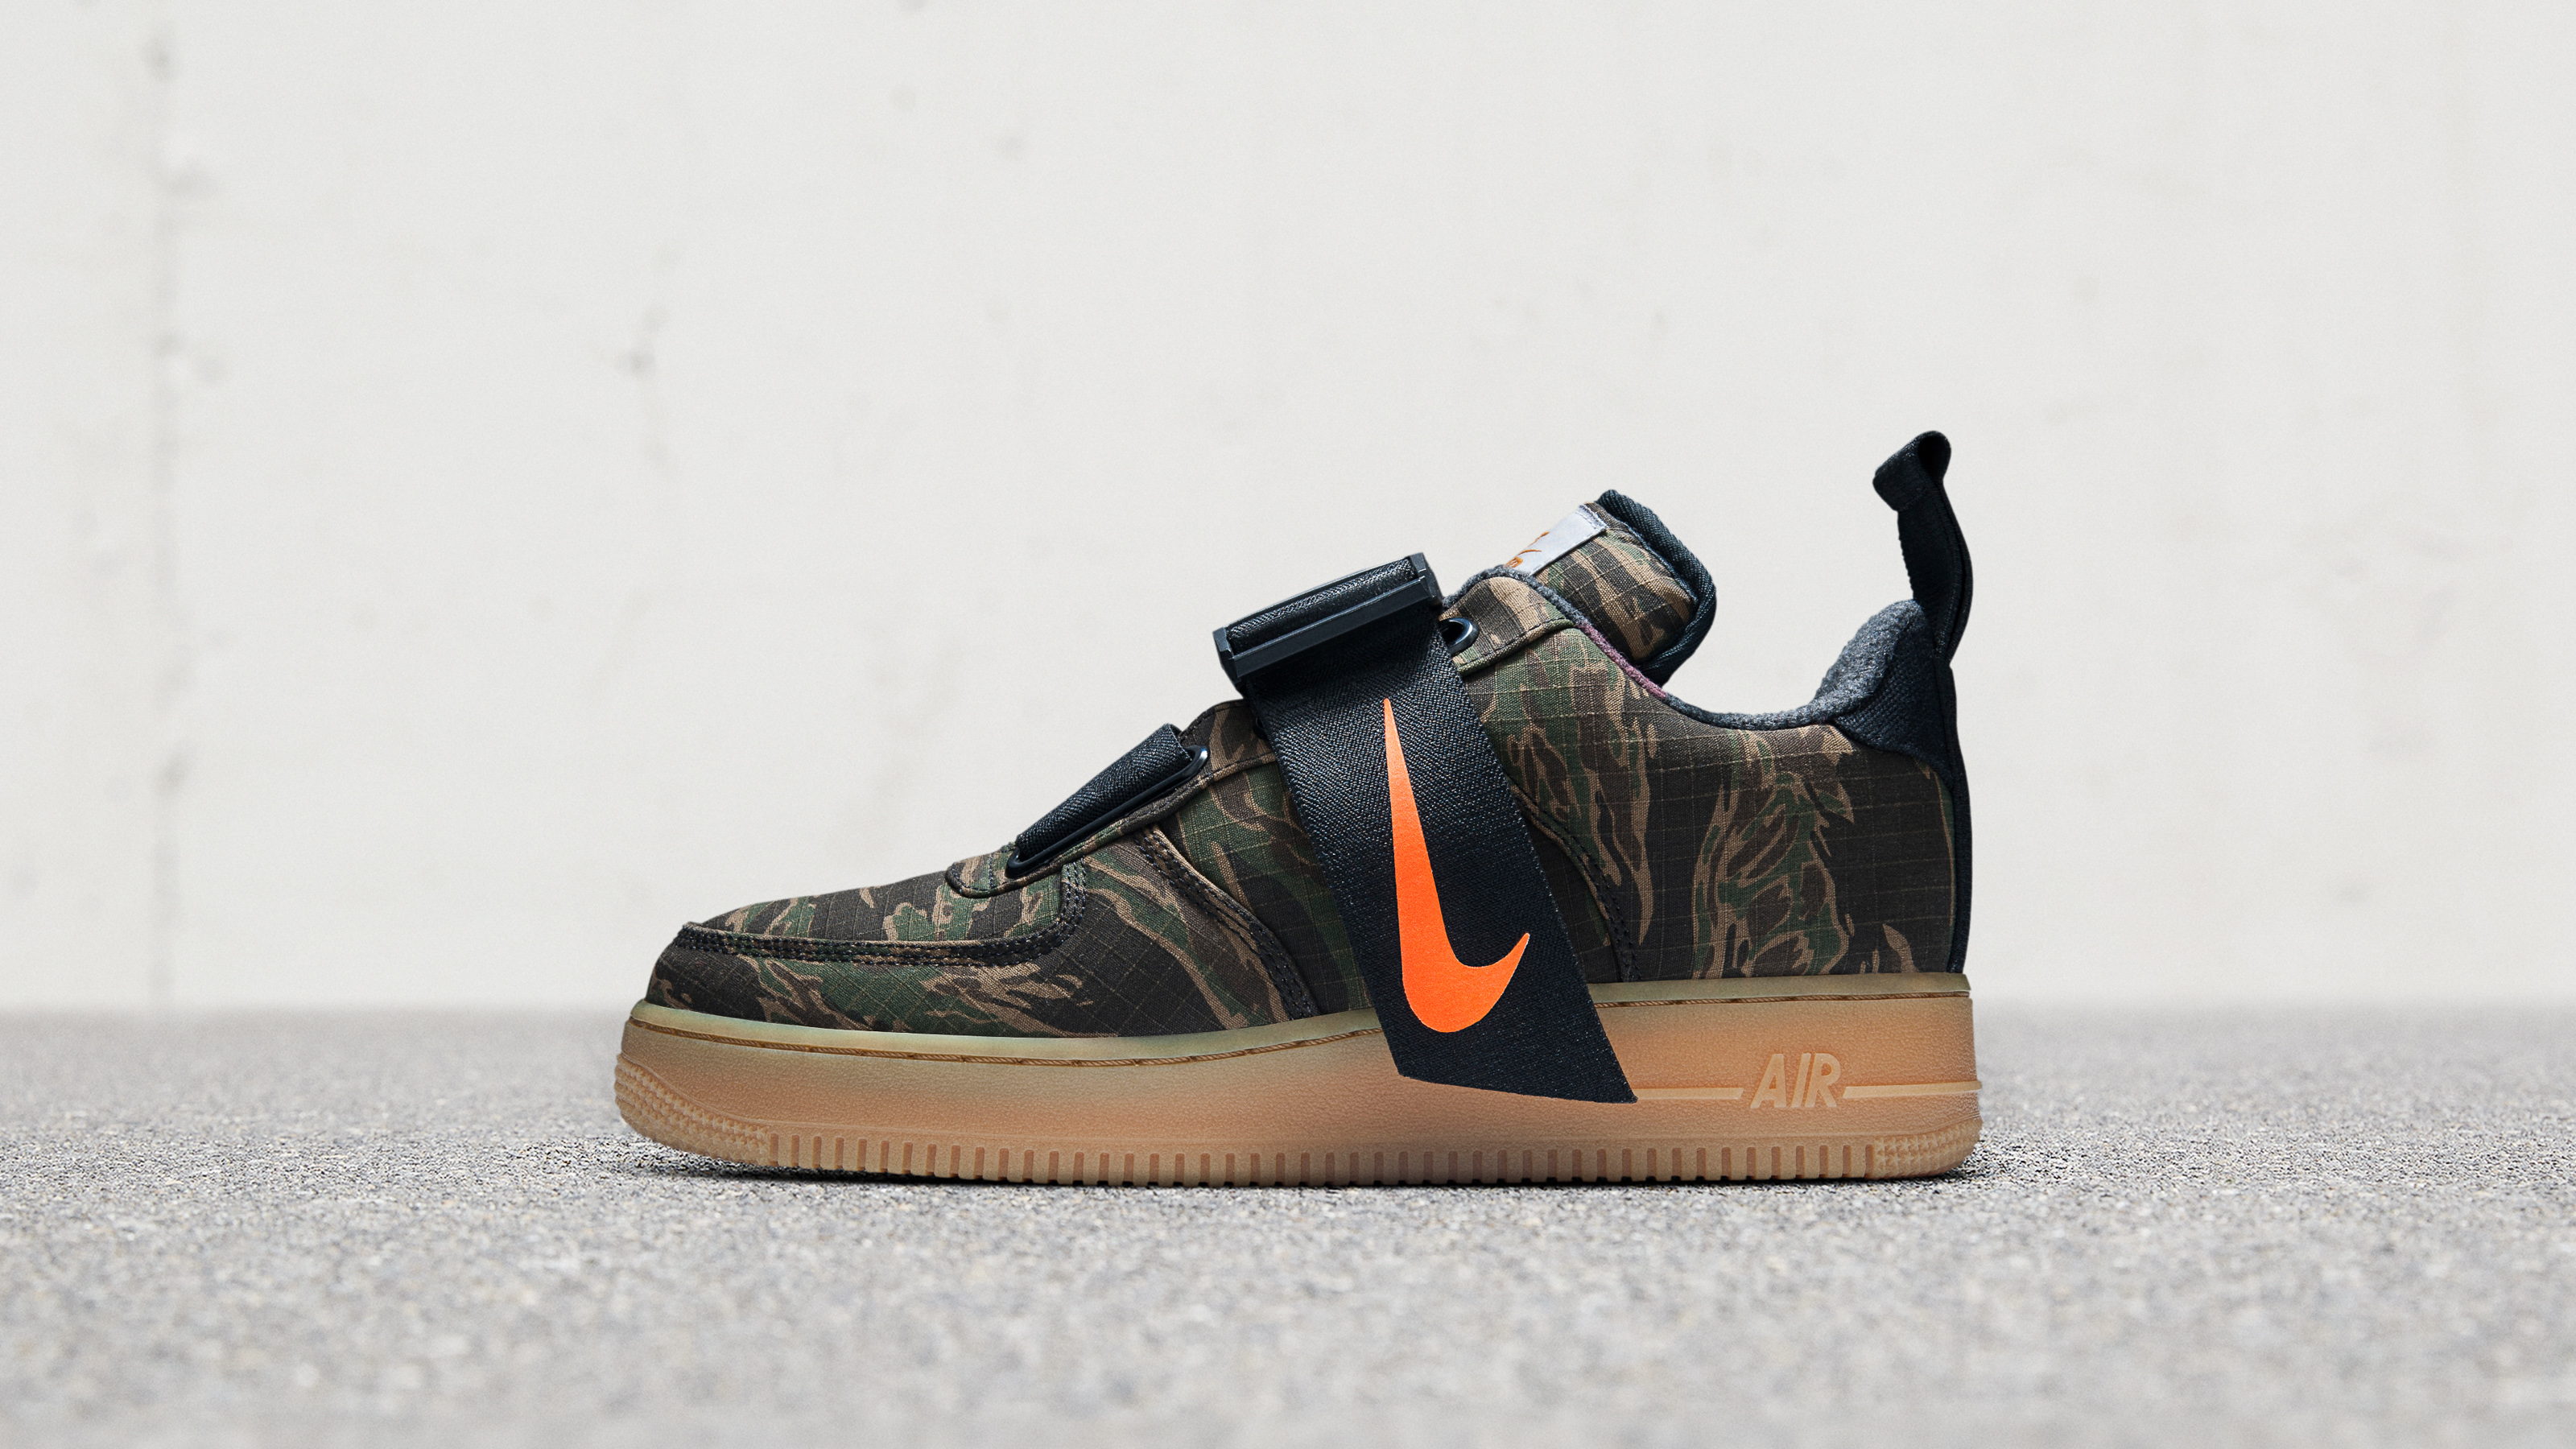 Nike x Carhartt WIP Air Force 1 Low Utility